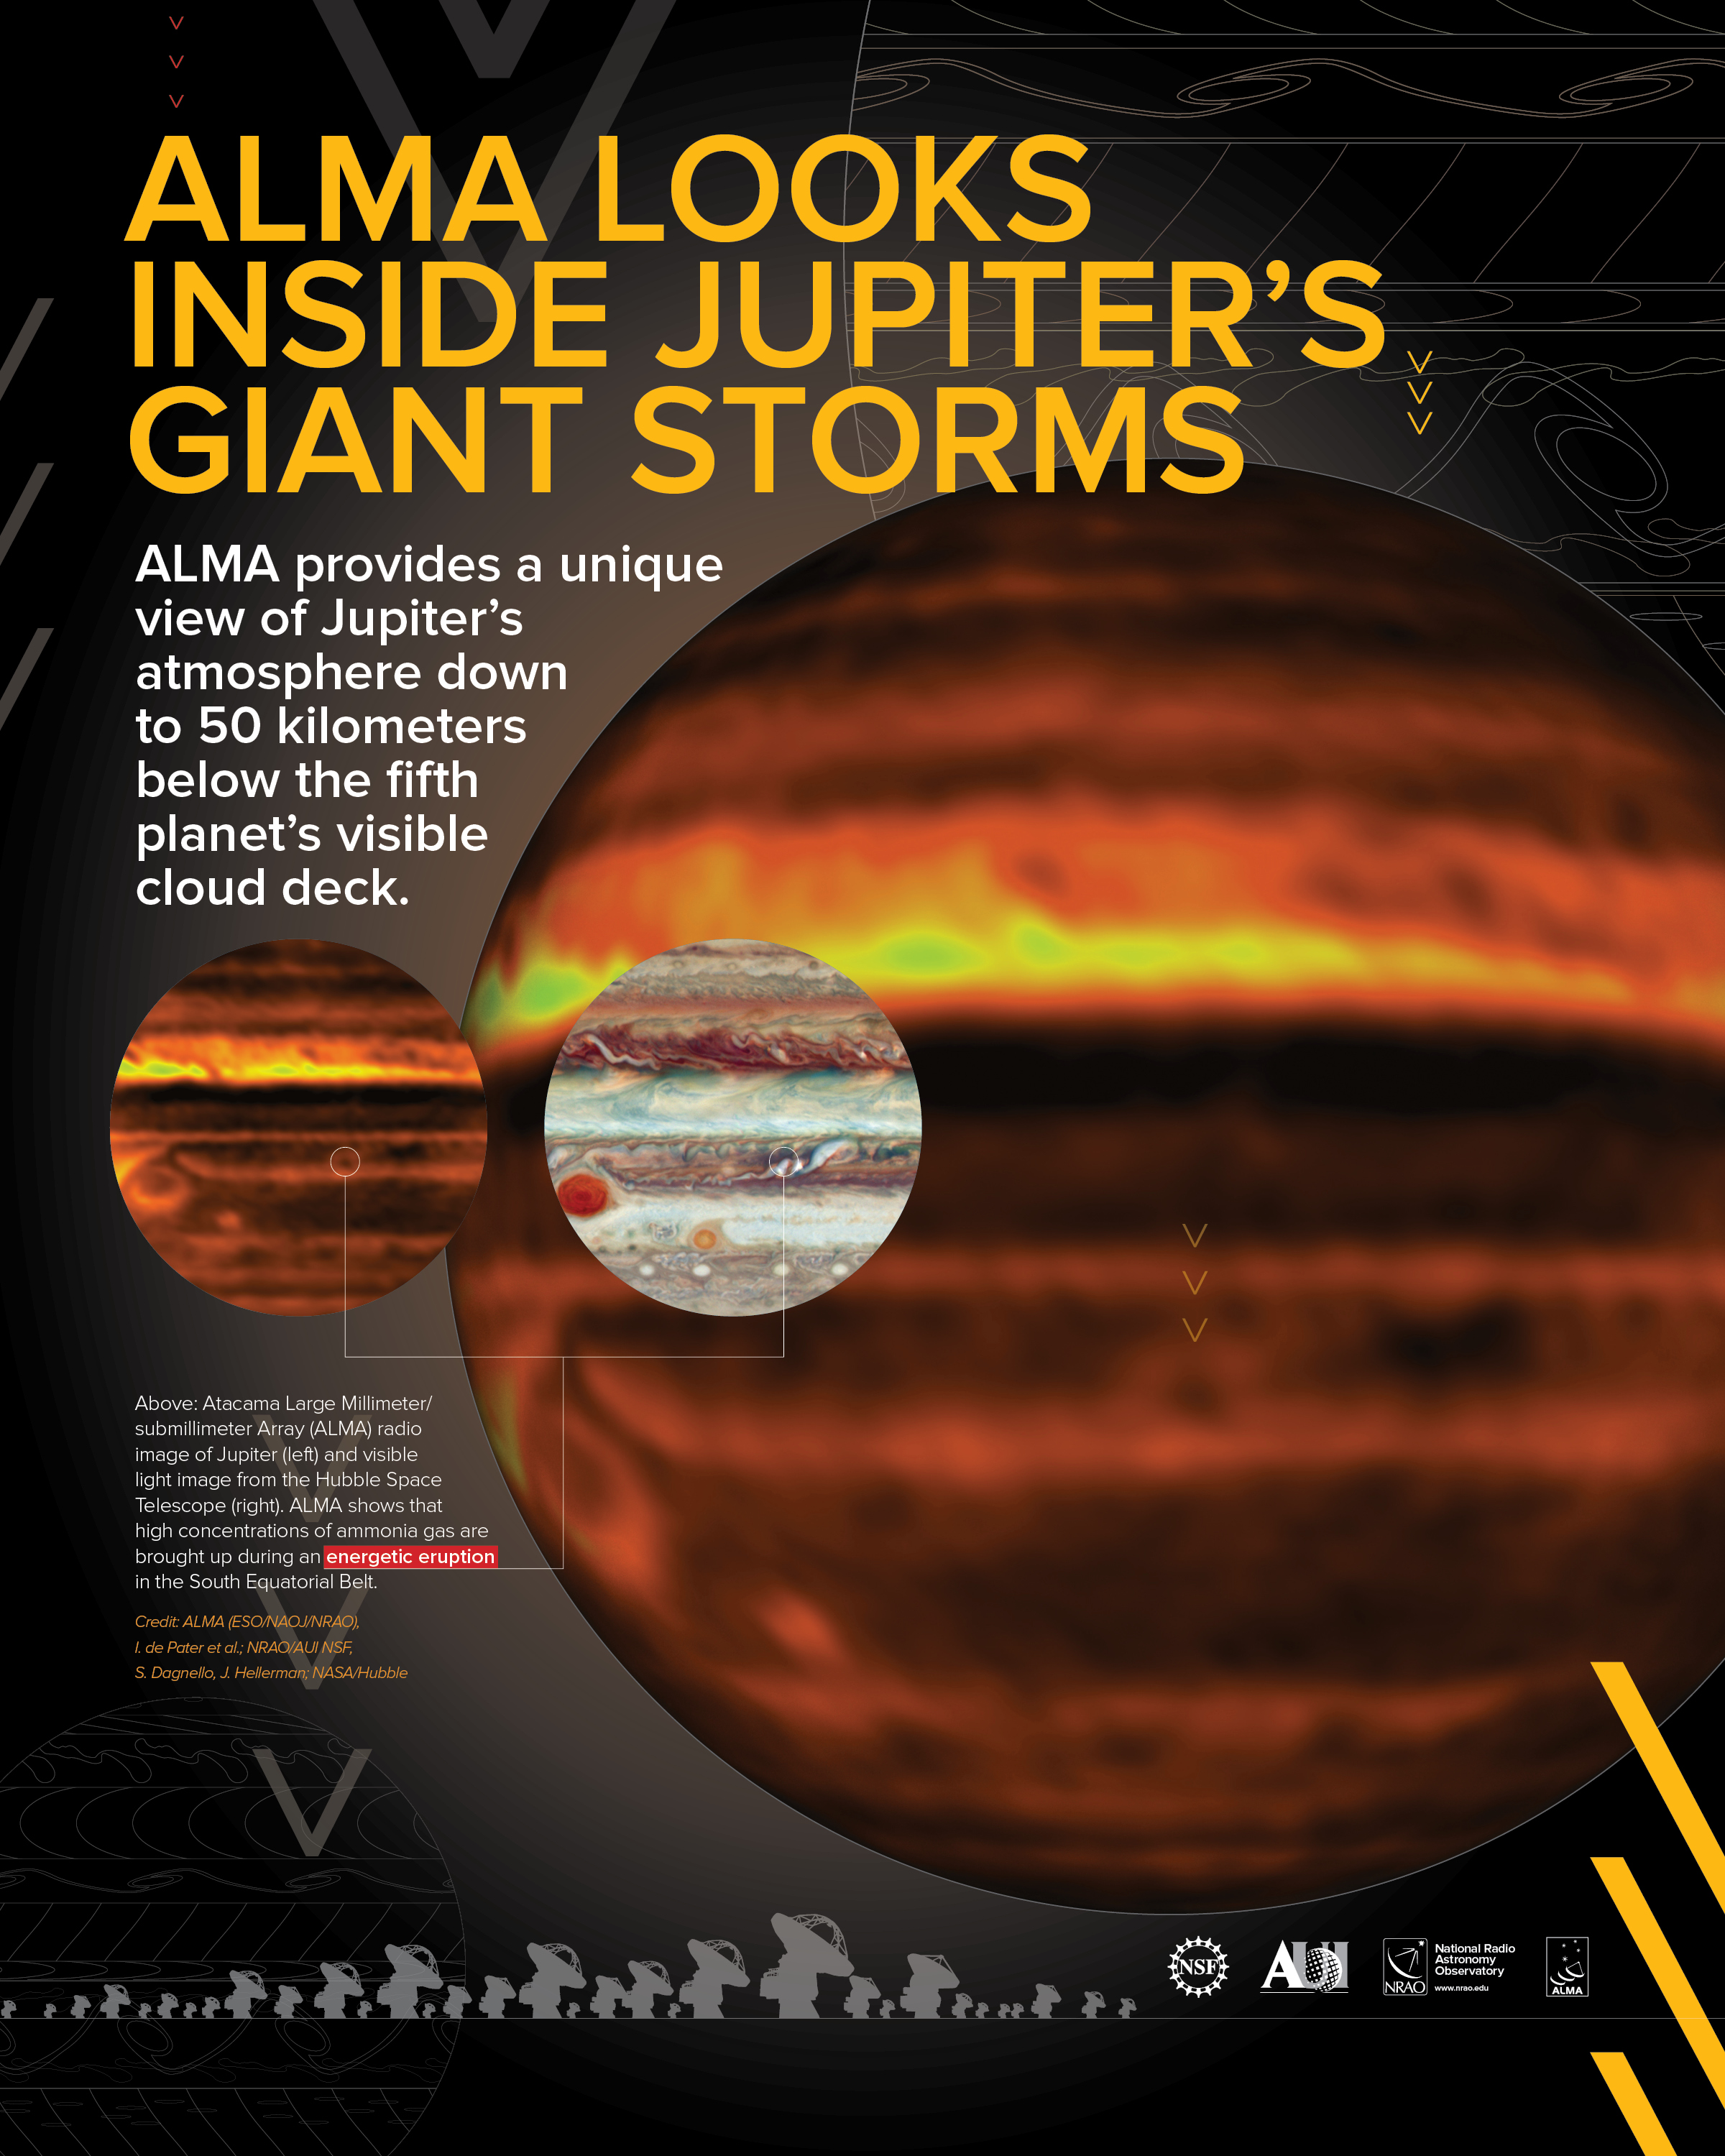 ALMA Peers into the Turbulent Atmosphere of Jupiter